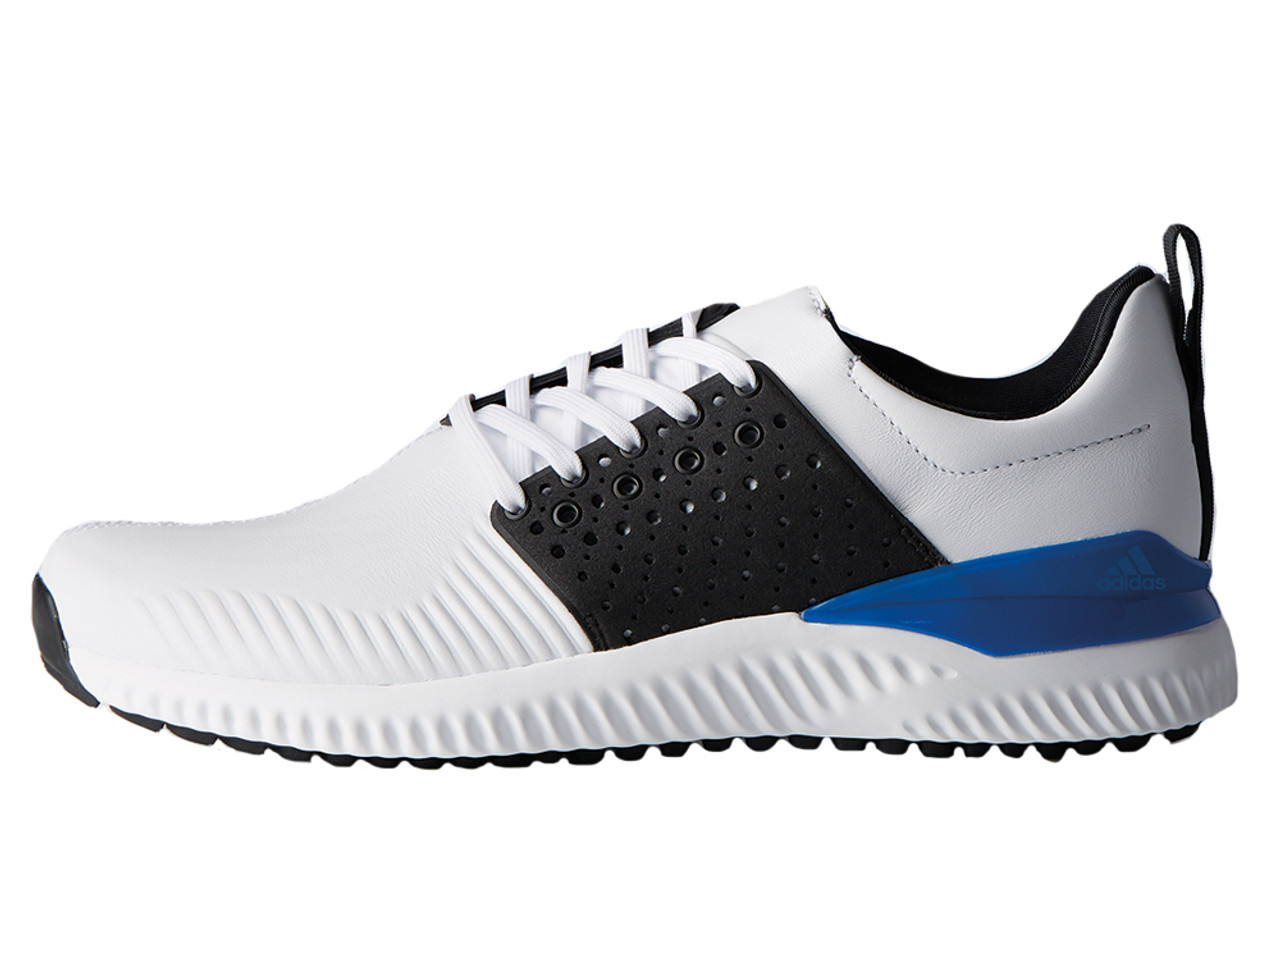 yeso Respetuoso persecucion  Adidas Adicross Bounce Leather Golf Shoes - White/Black/Blue - Mens |  GolfBox